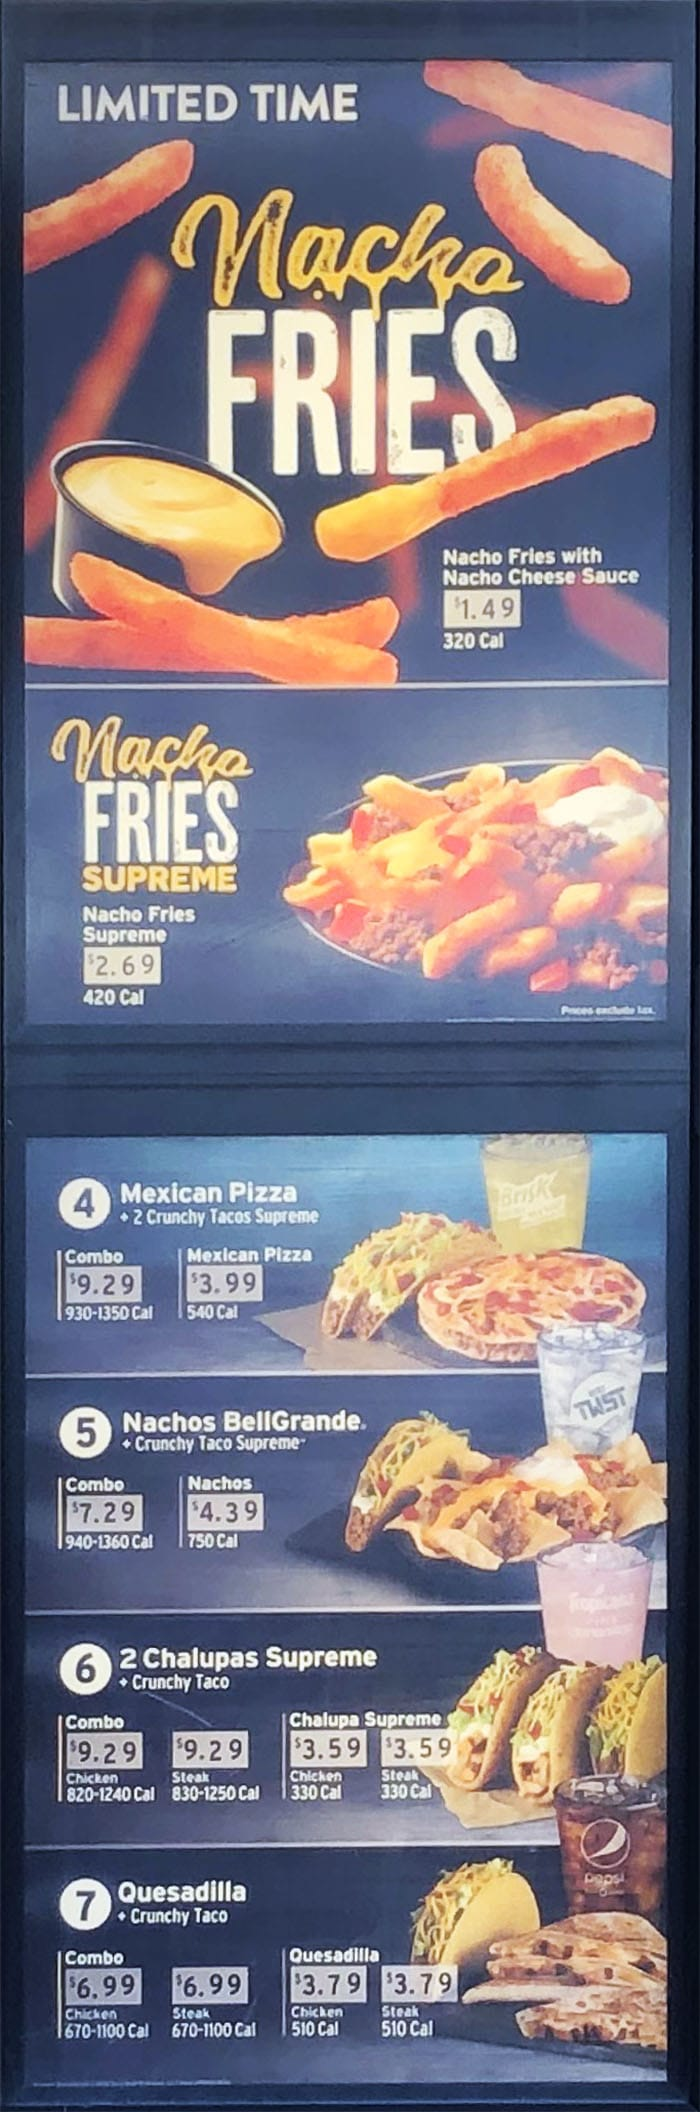 Taco Bell menu - nacho fries, more combos